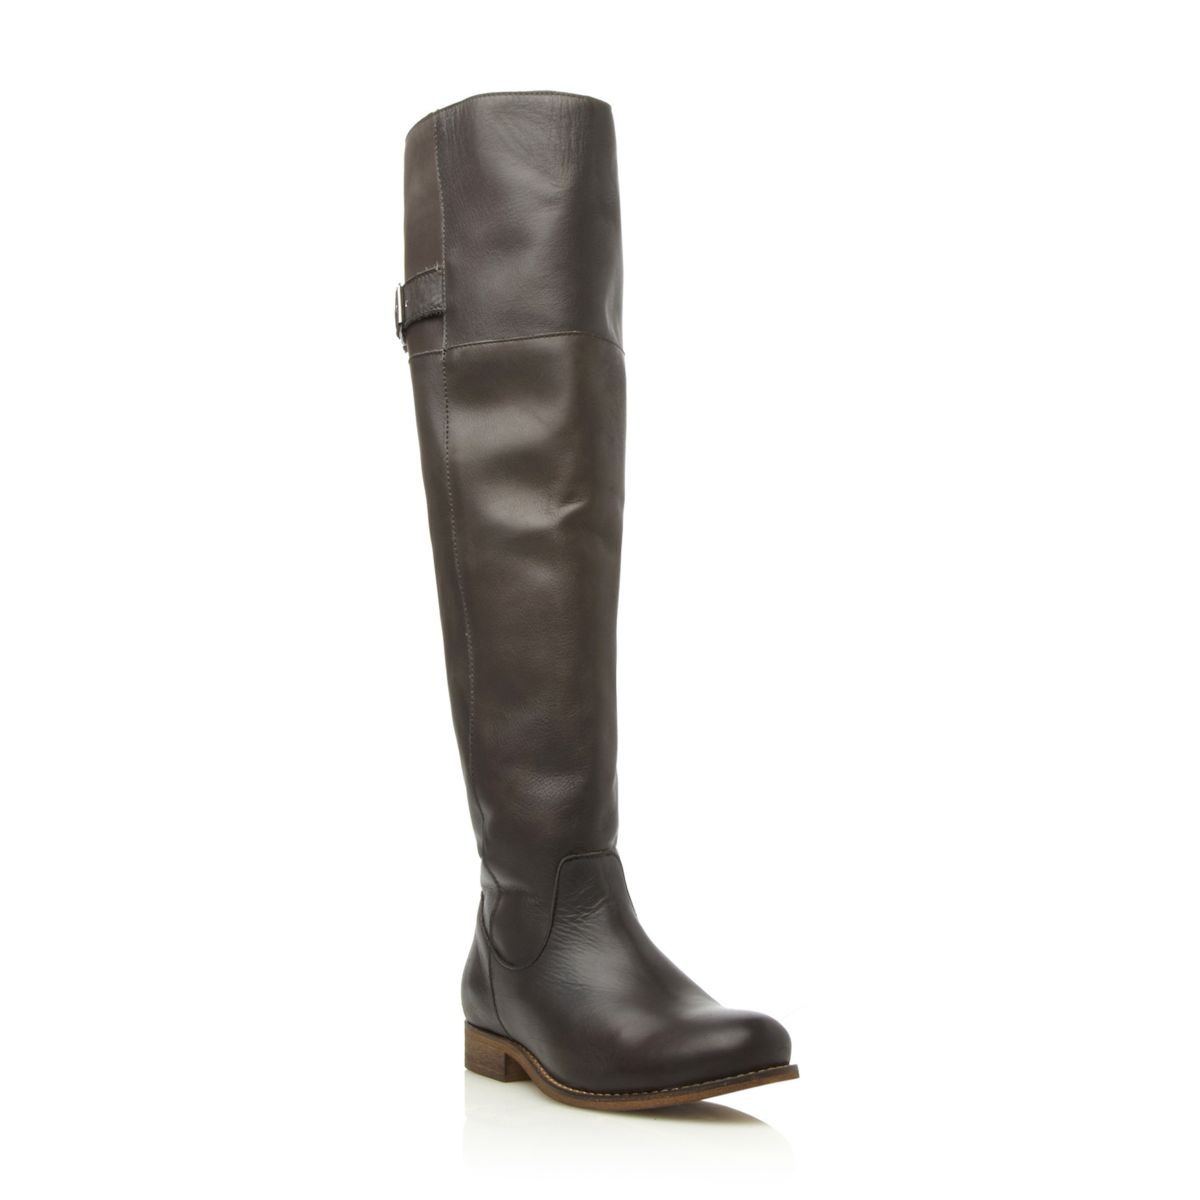 NEW-DUNE-BERTIE-LADIES-OVER-THE-KNEE-RIDING-LOW-HEELED-BOOTS-WOMENS-SIZES-3-8